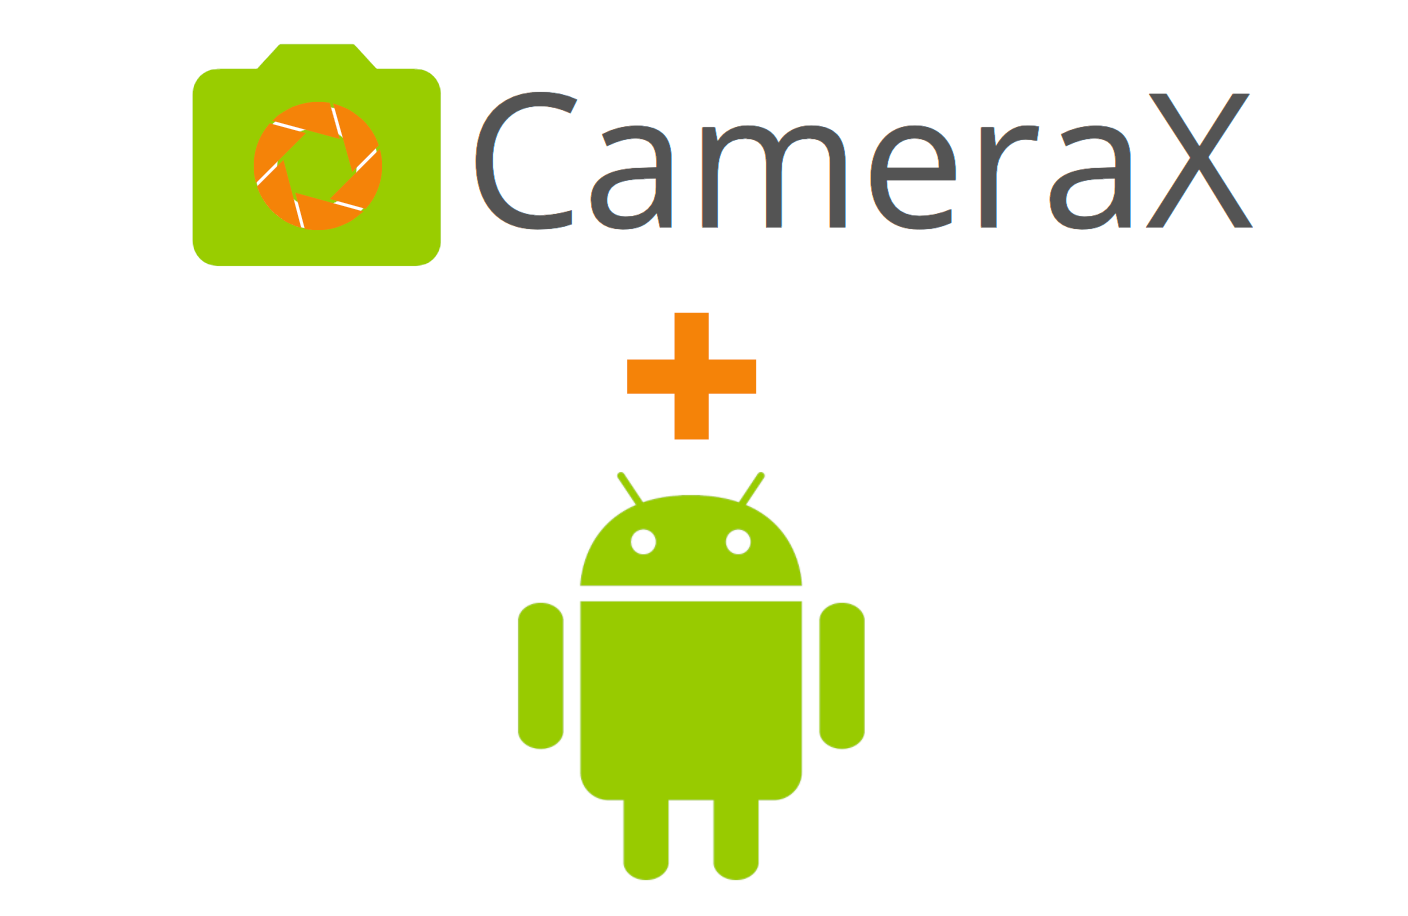 Android CameraX